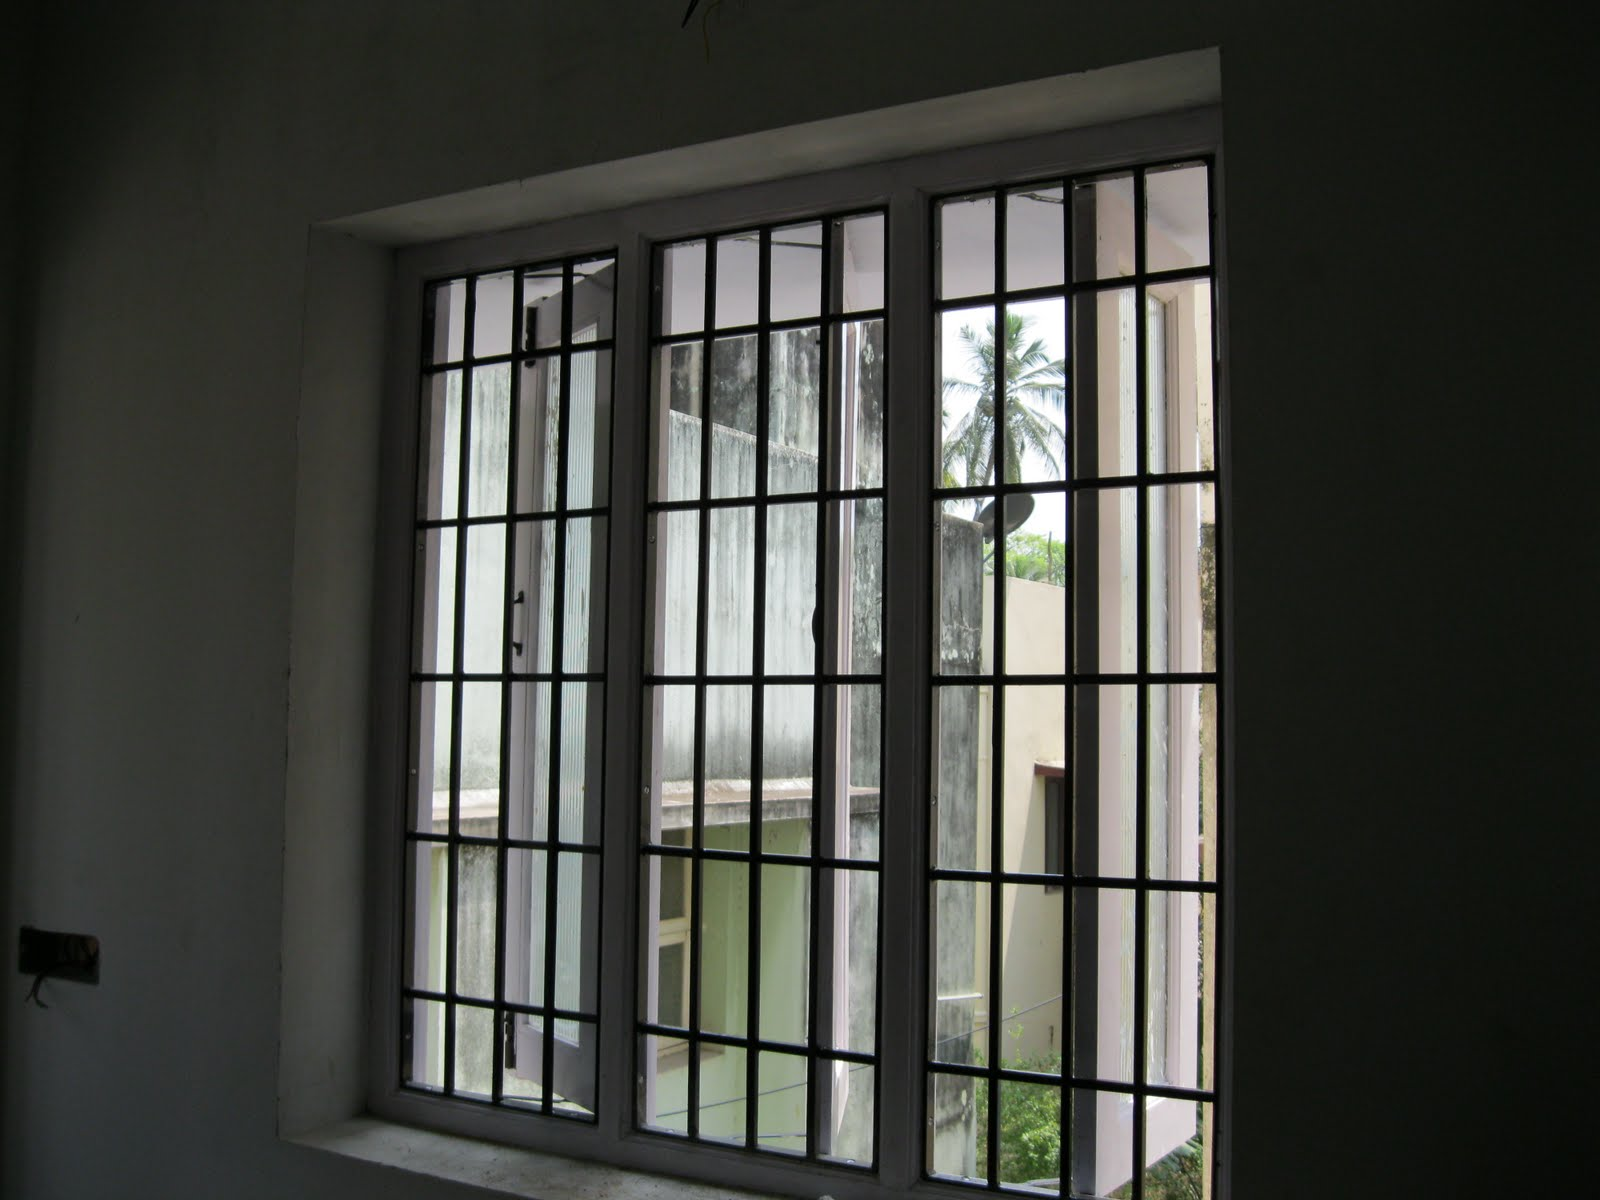 Window grill design photos in kerala joy studio design for Home window design pictures